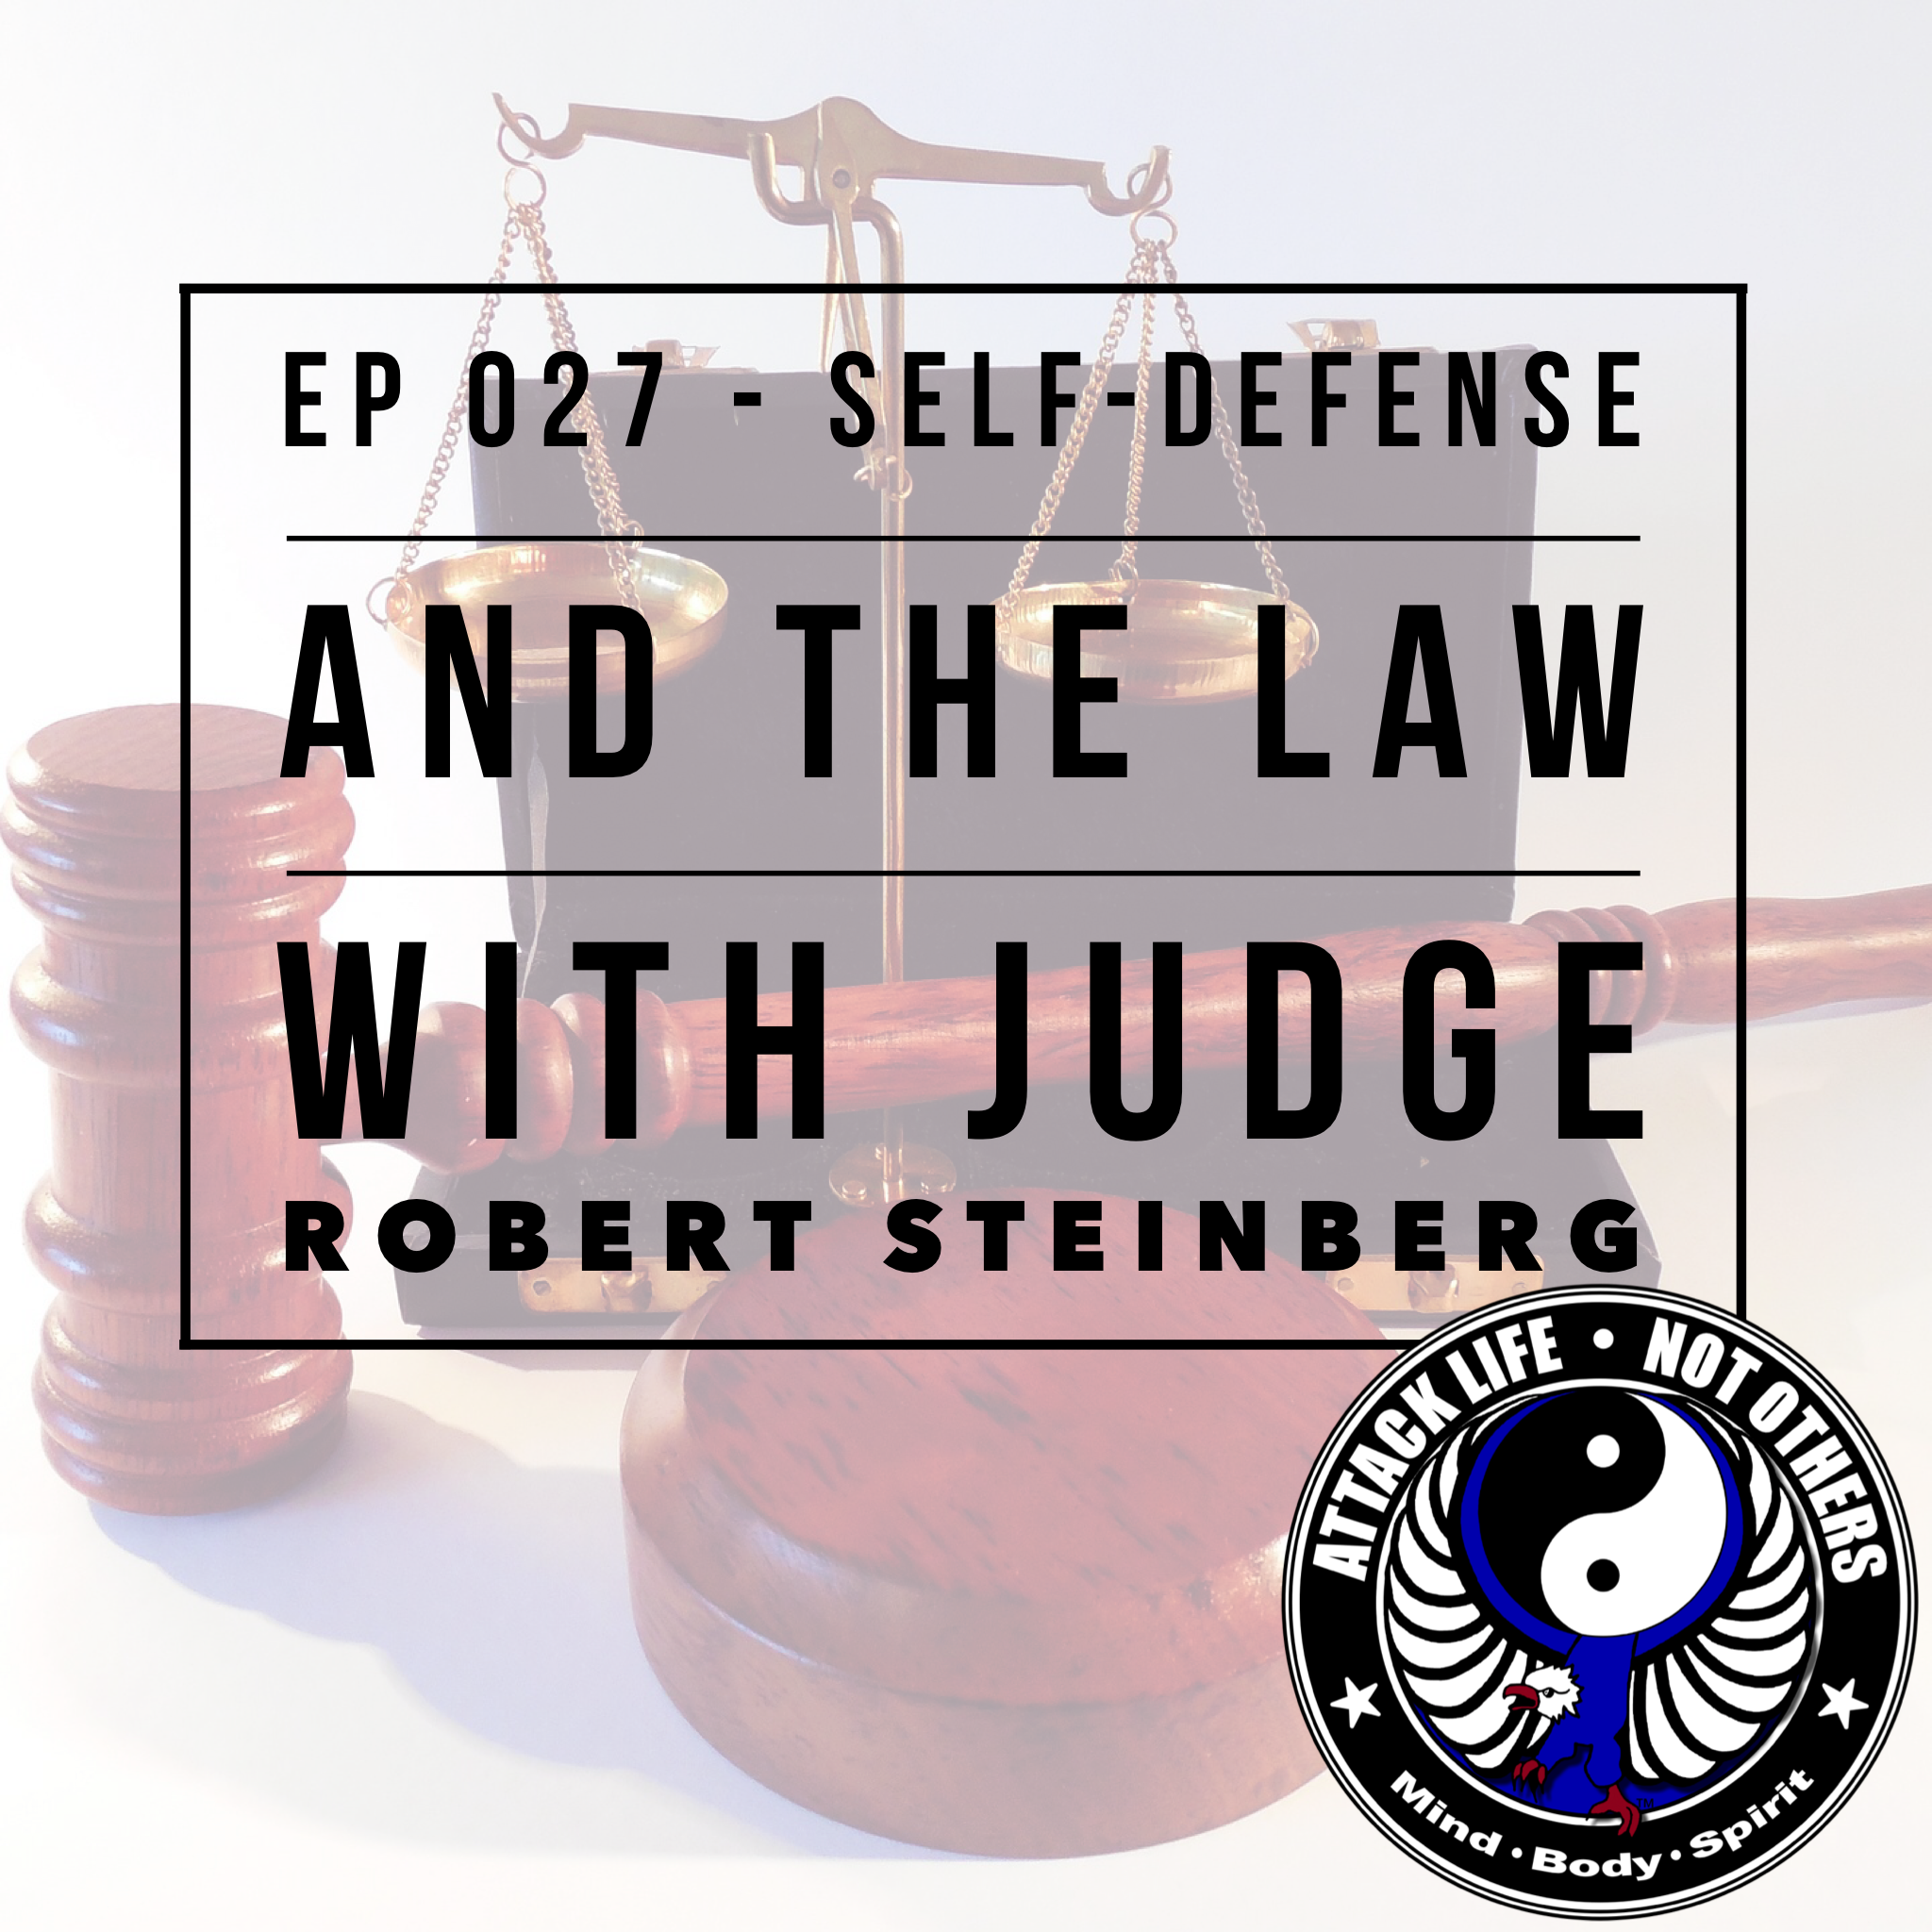 Ep 027 - Self-Defense and The Law with Judge Robert Steinberg